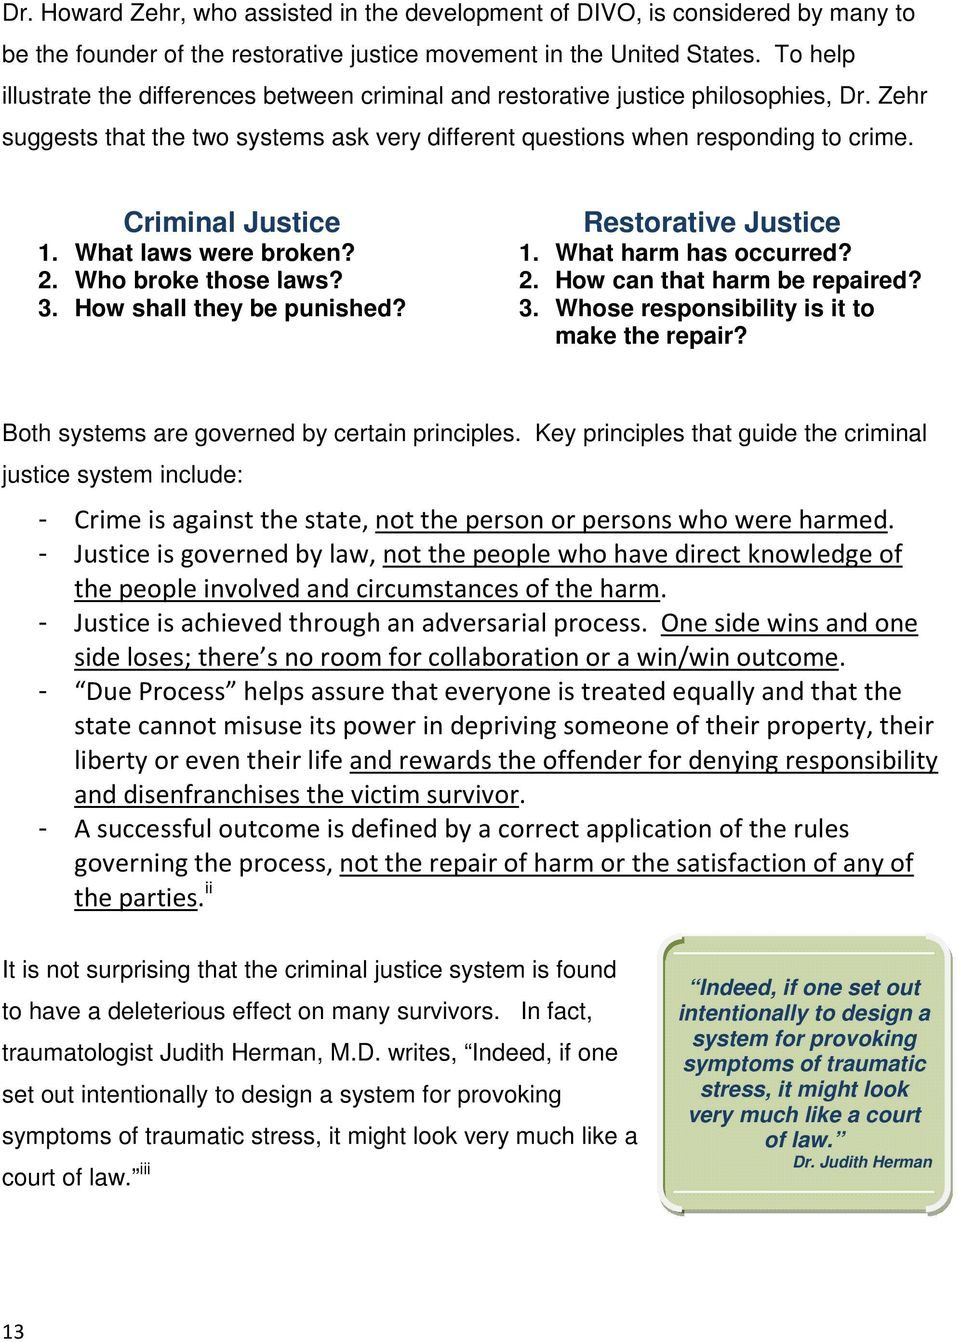 Criminal Justice Restorative Justice 1. What laws were broken? 1. What harm has occurred? 2. Who broke those laws? 2. How can that harm be repaired? 3. How shall they be punished? 3. Whose responsibility is it to make the repair?